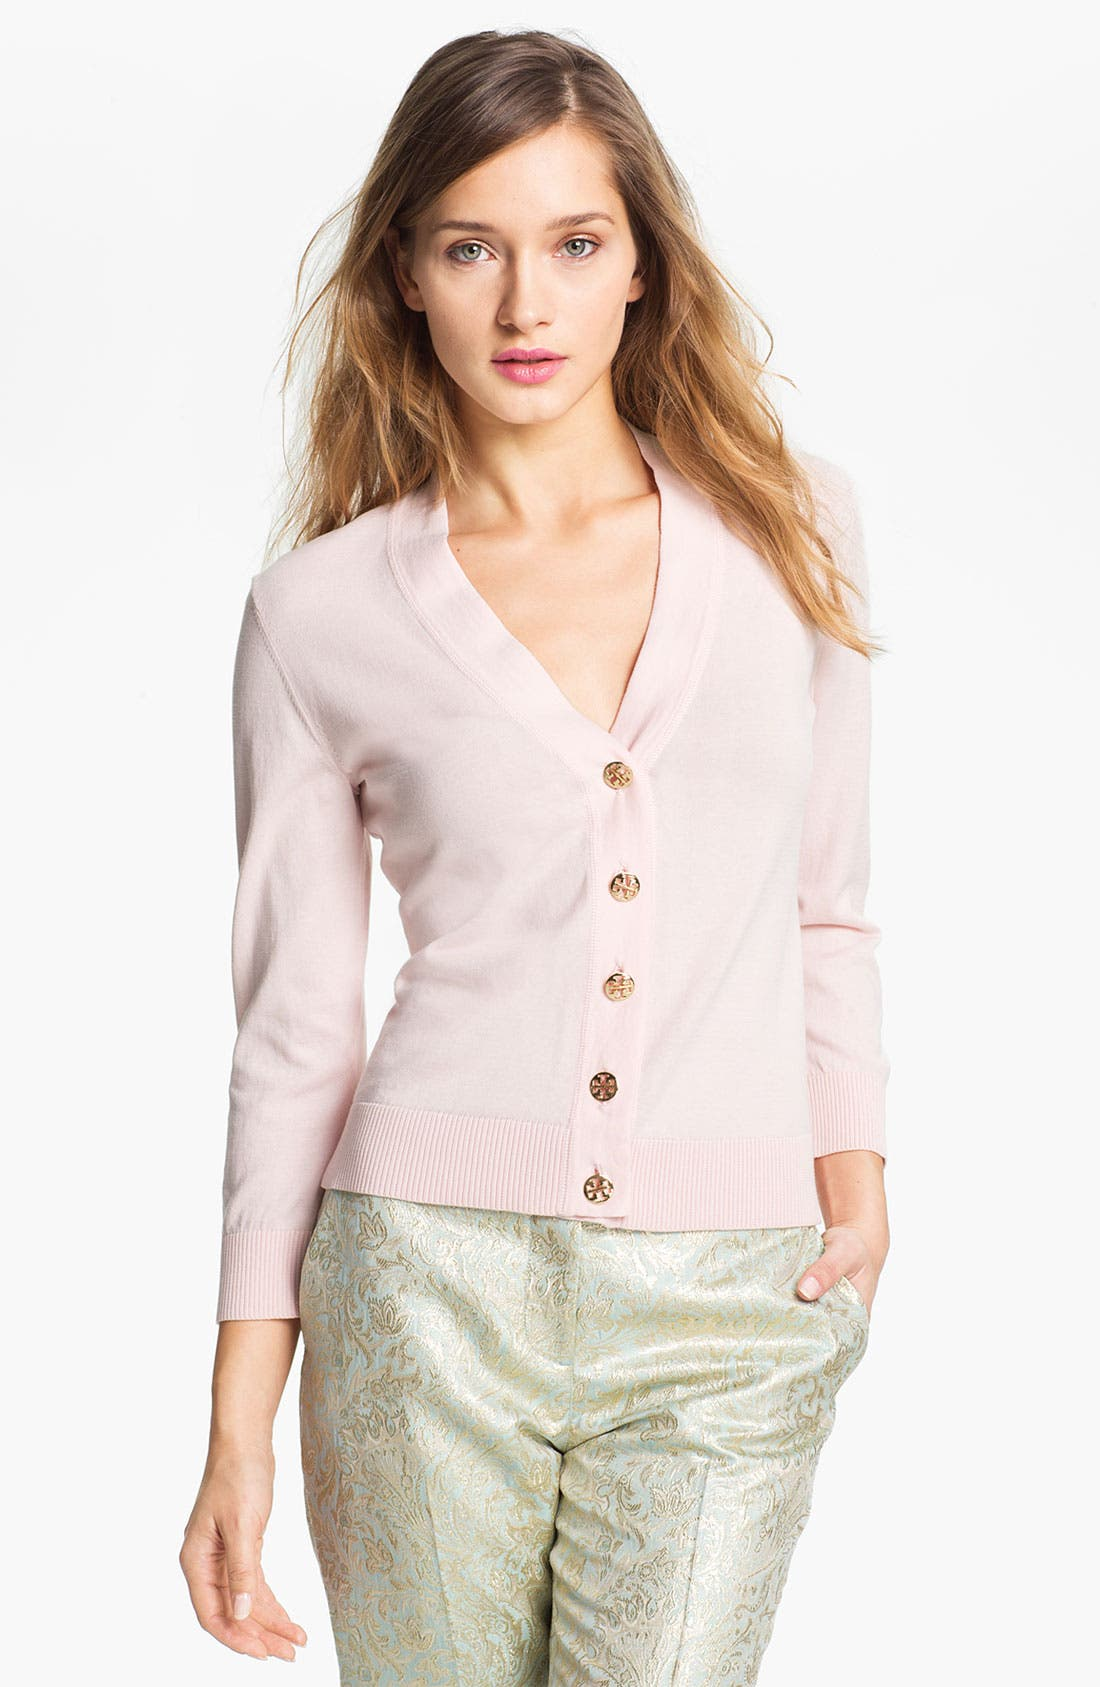 Alternate Image 1 Selected - Tory Burch 'Simone' Shrunken Cardigan